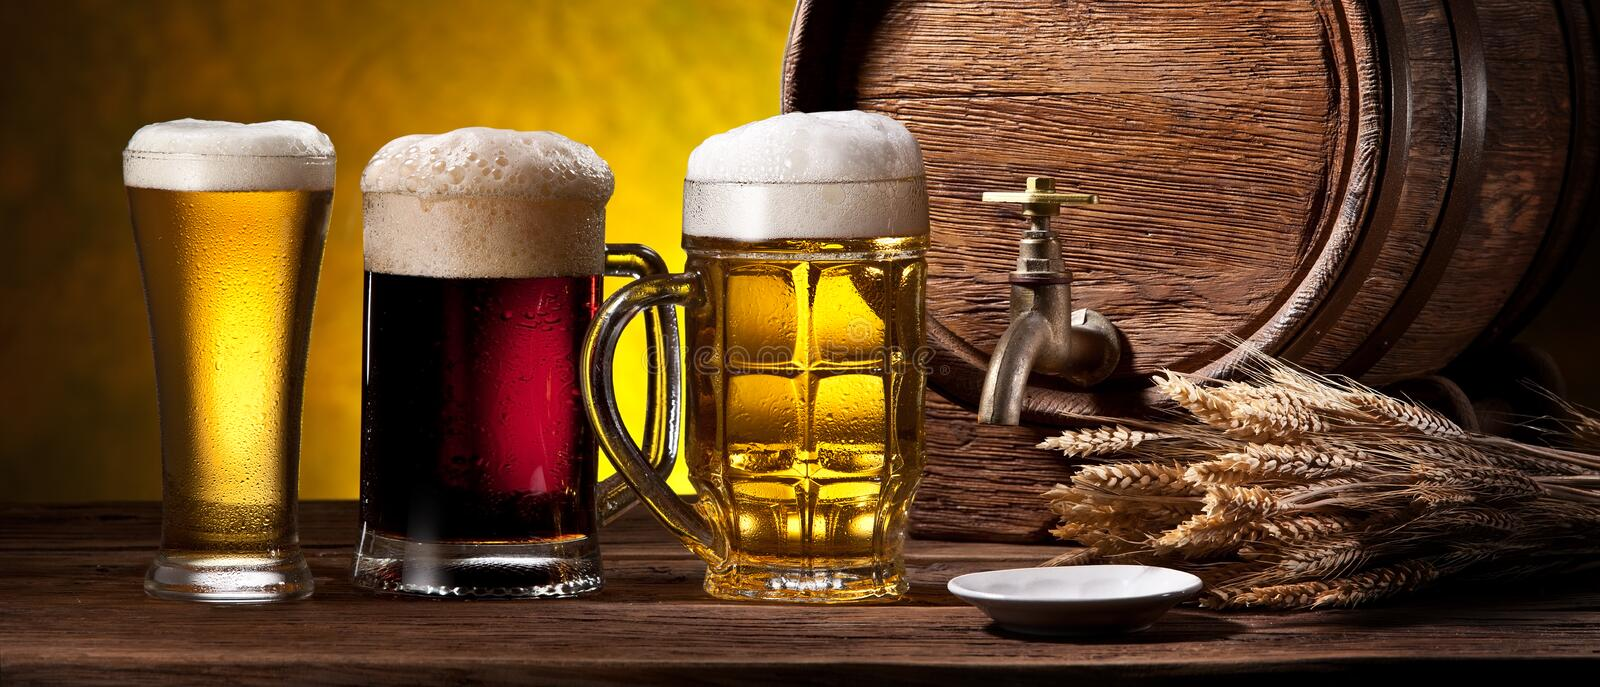 Glasses of beer and beer cask on the wooden table. Craft brewery.  royalty free stock image